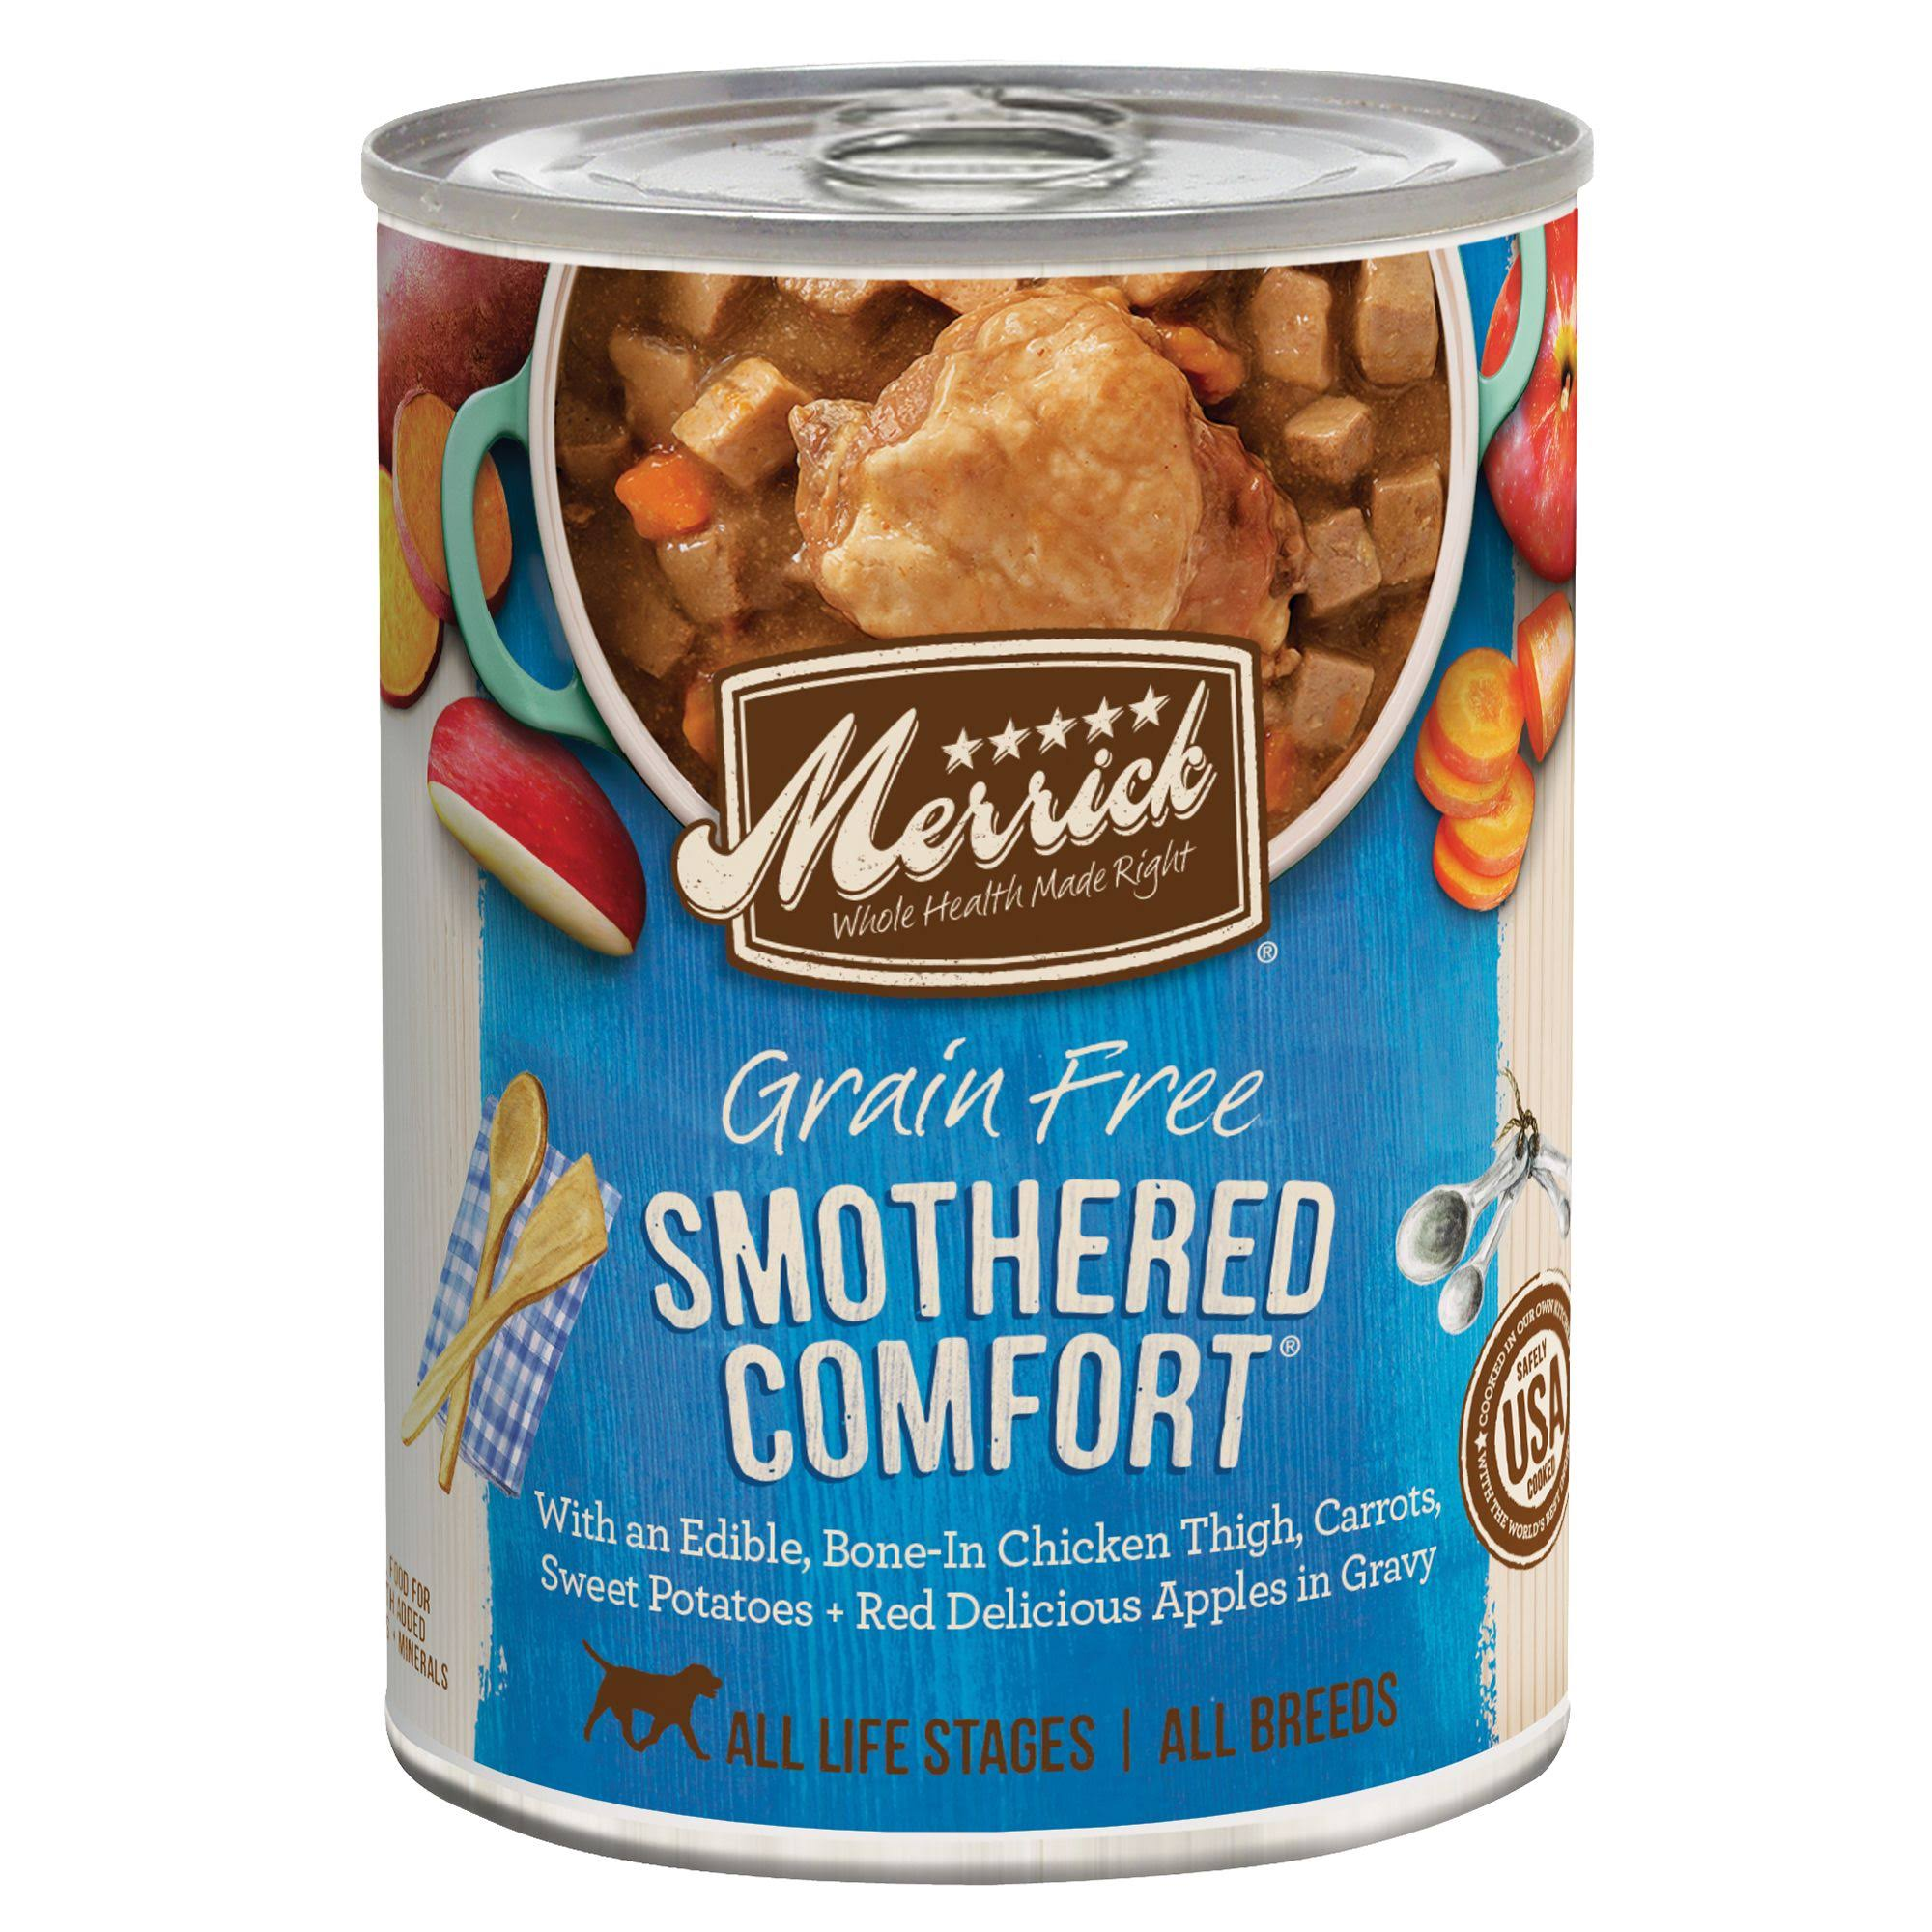 Merrick Smothered Comfort Grain Free Canned Dog Food 12.7oz